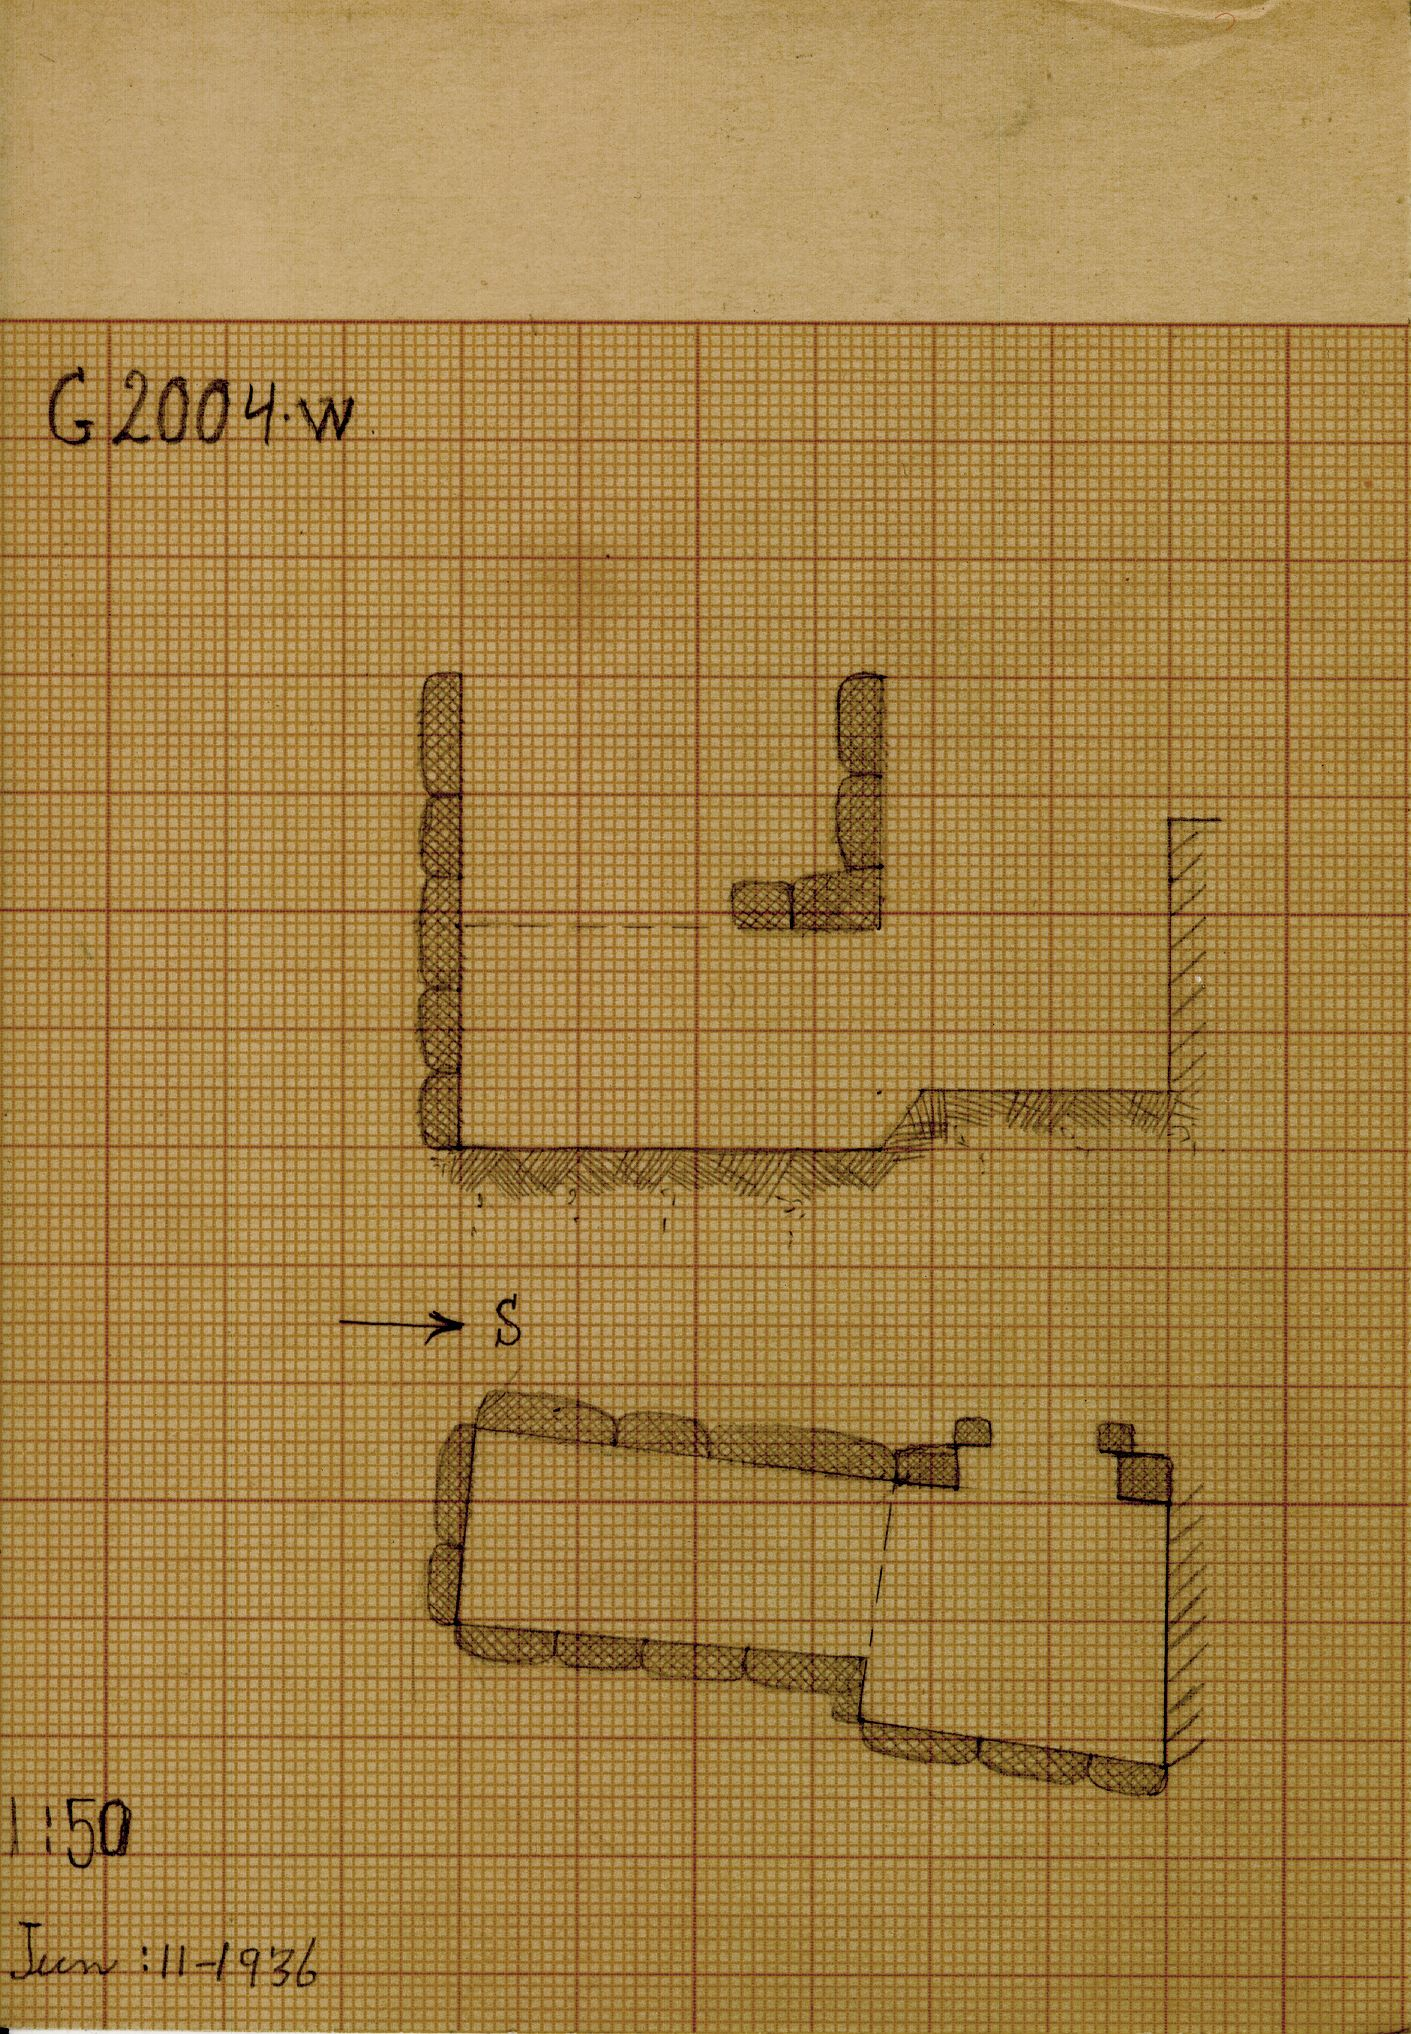 Maps and plans: G 2004, Shaft W